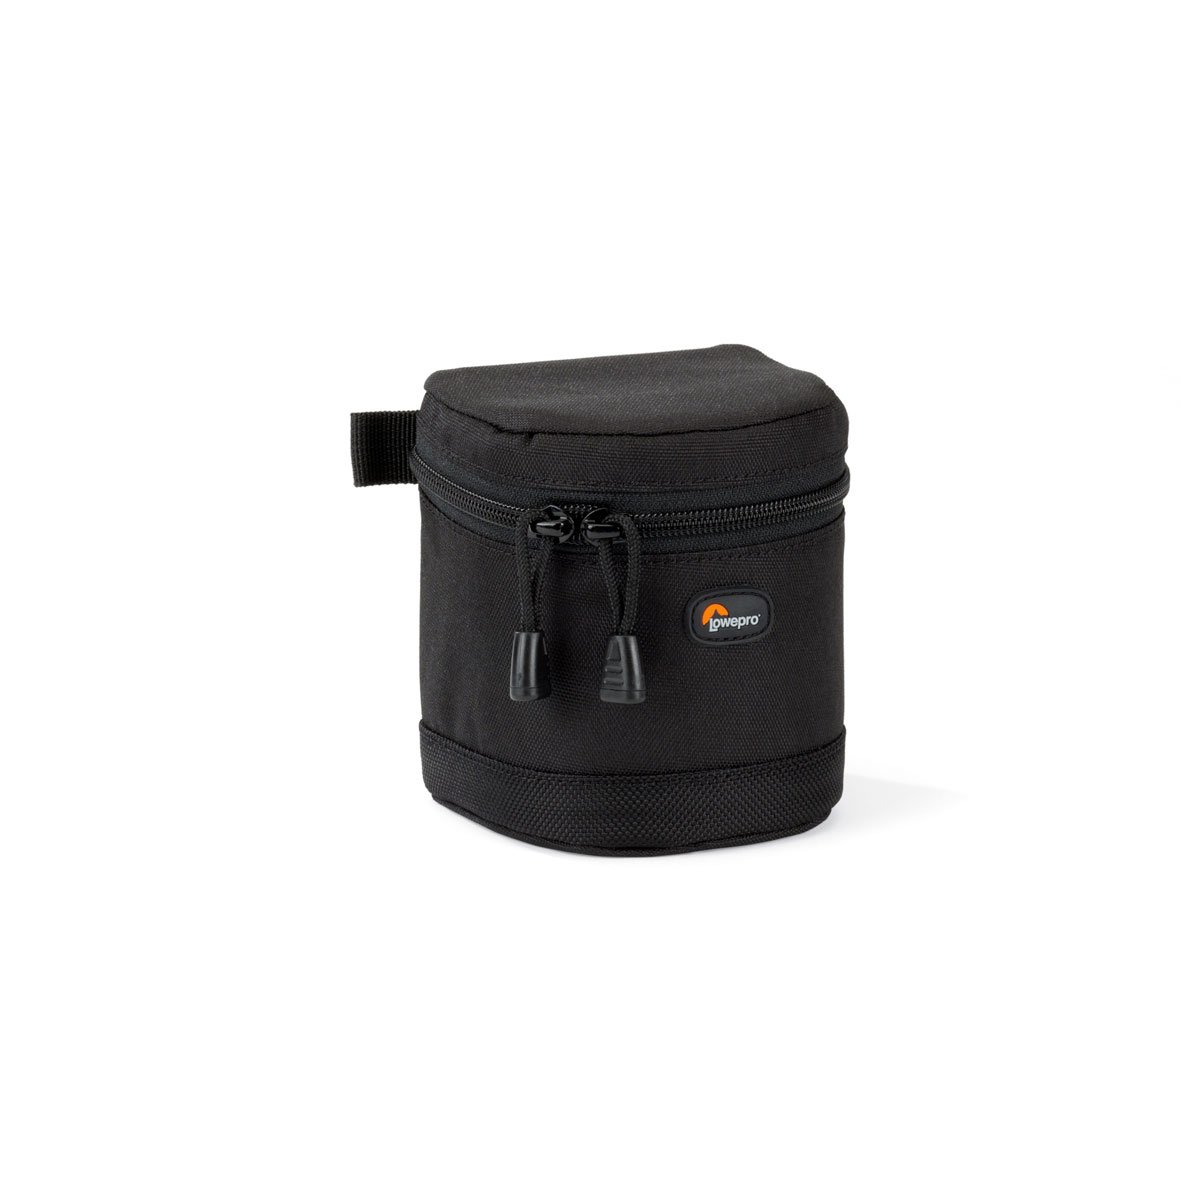 Lowepro Lens Case 9 x 9 cm - Black by Lowepro